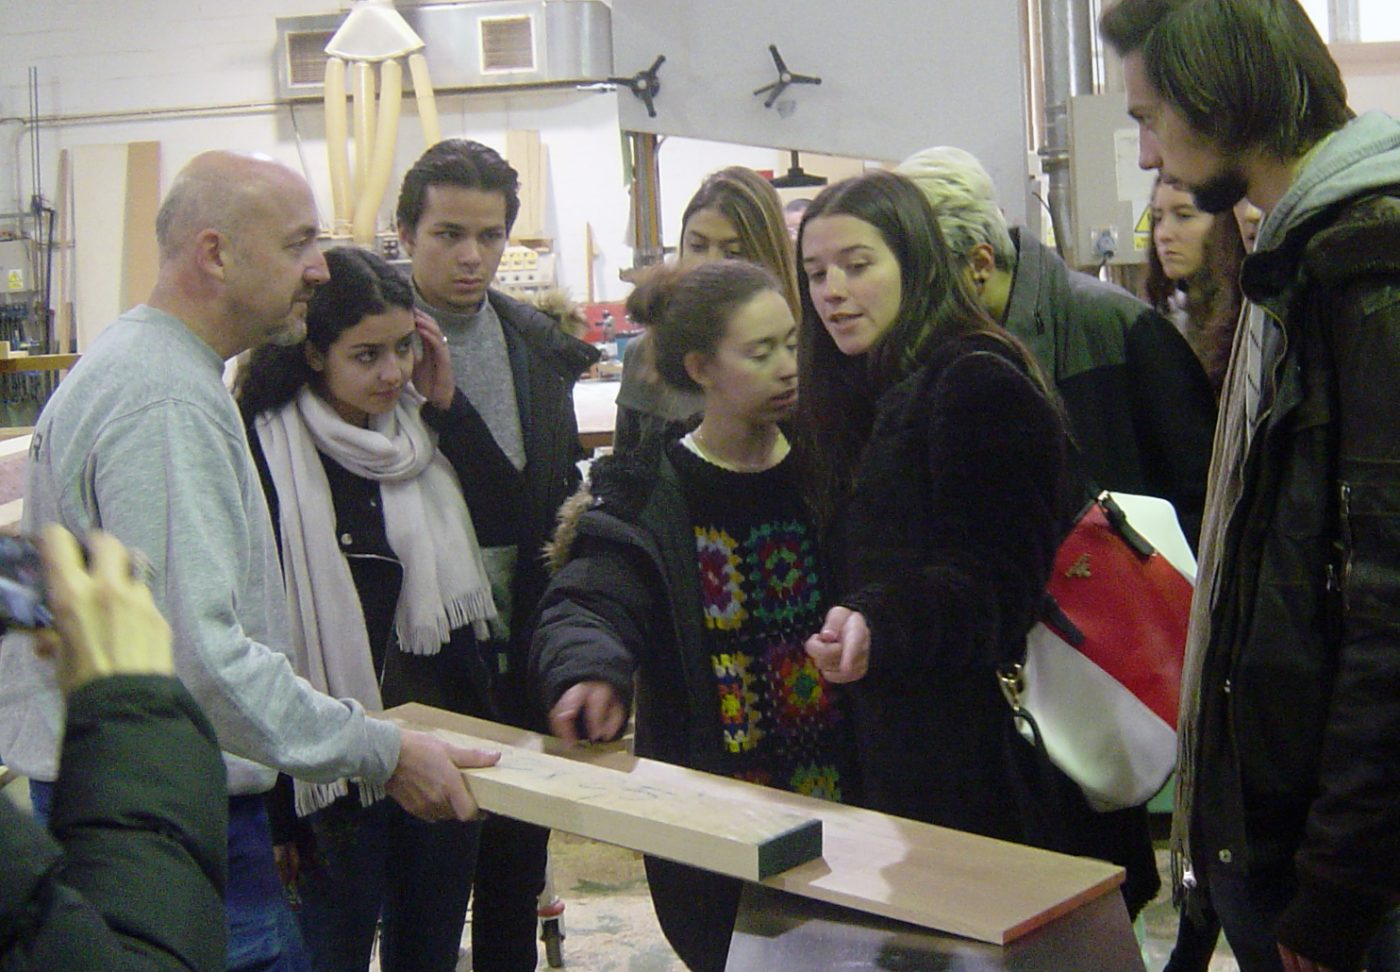 Alumnos de la IE SCHOOL OF ARCHITECTURE AND DESIGN de Segovia visitan la CARPINTERÍA LA NAVARRA